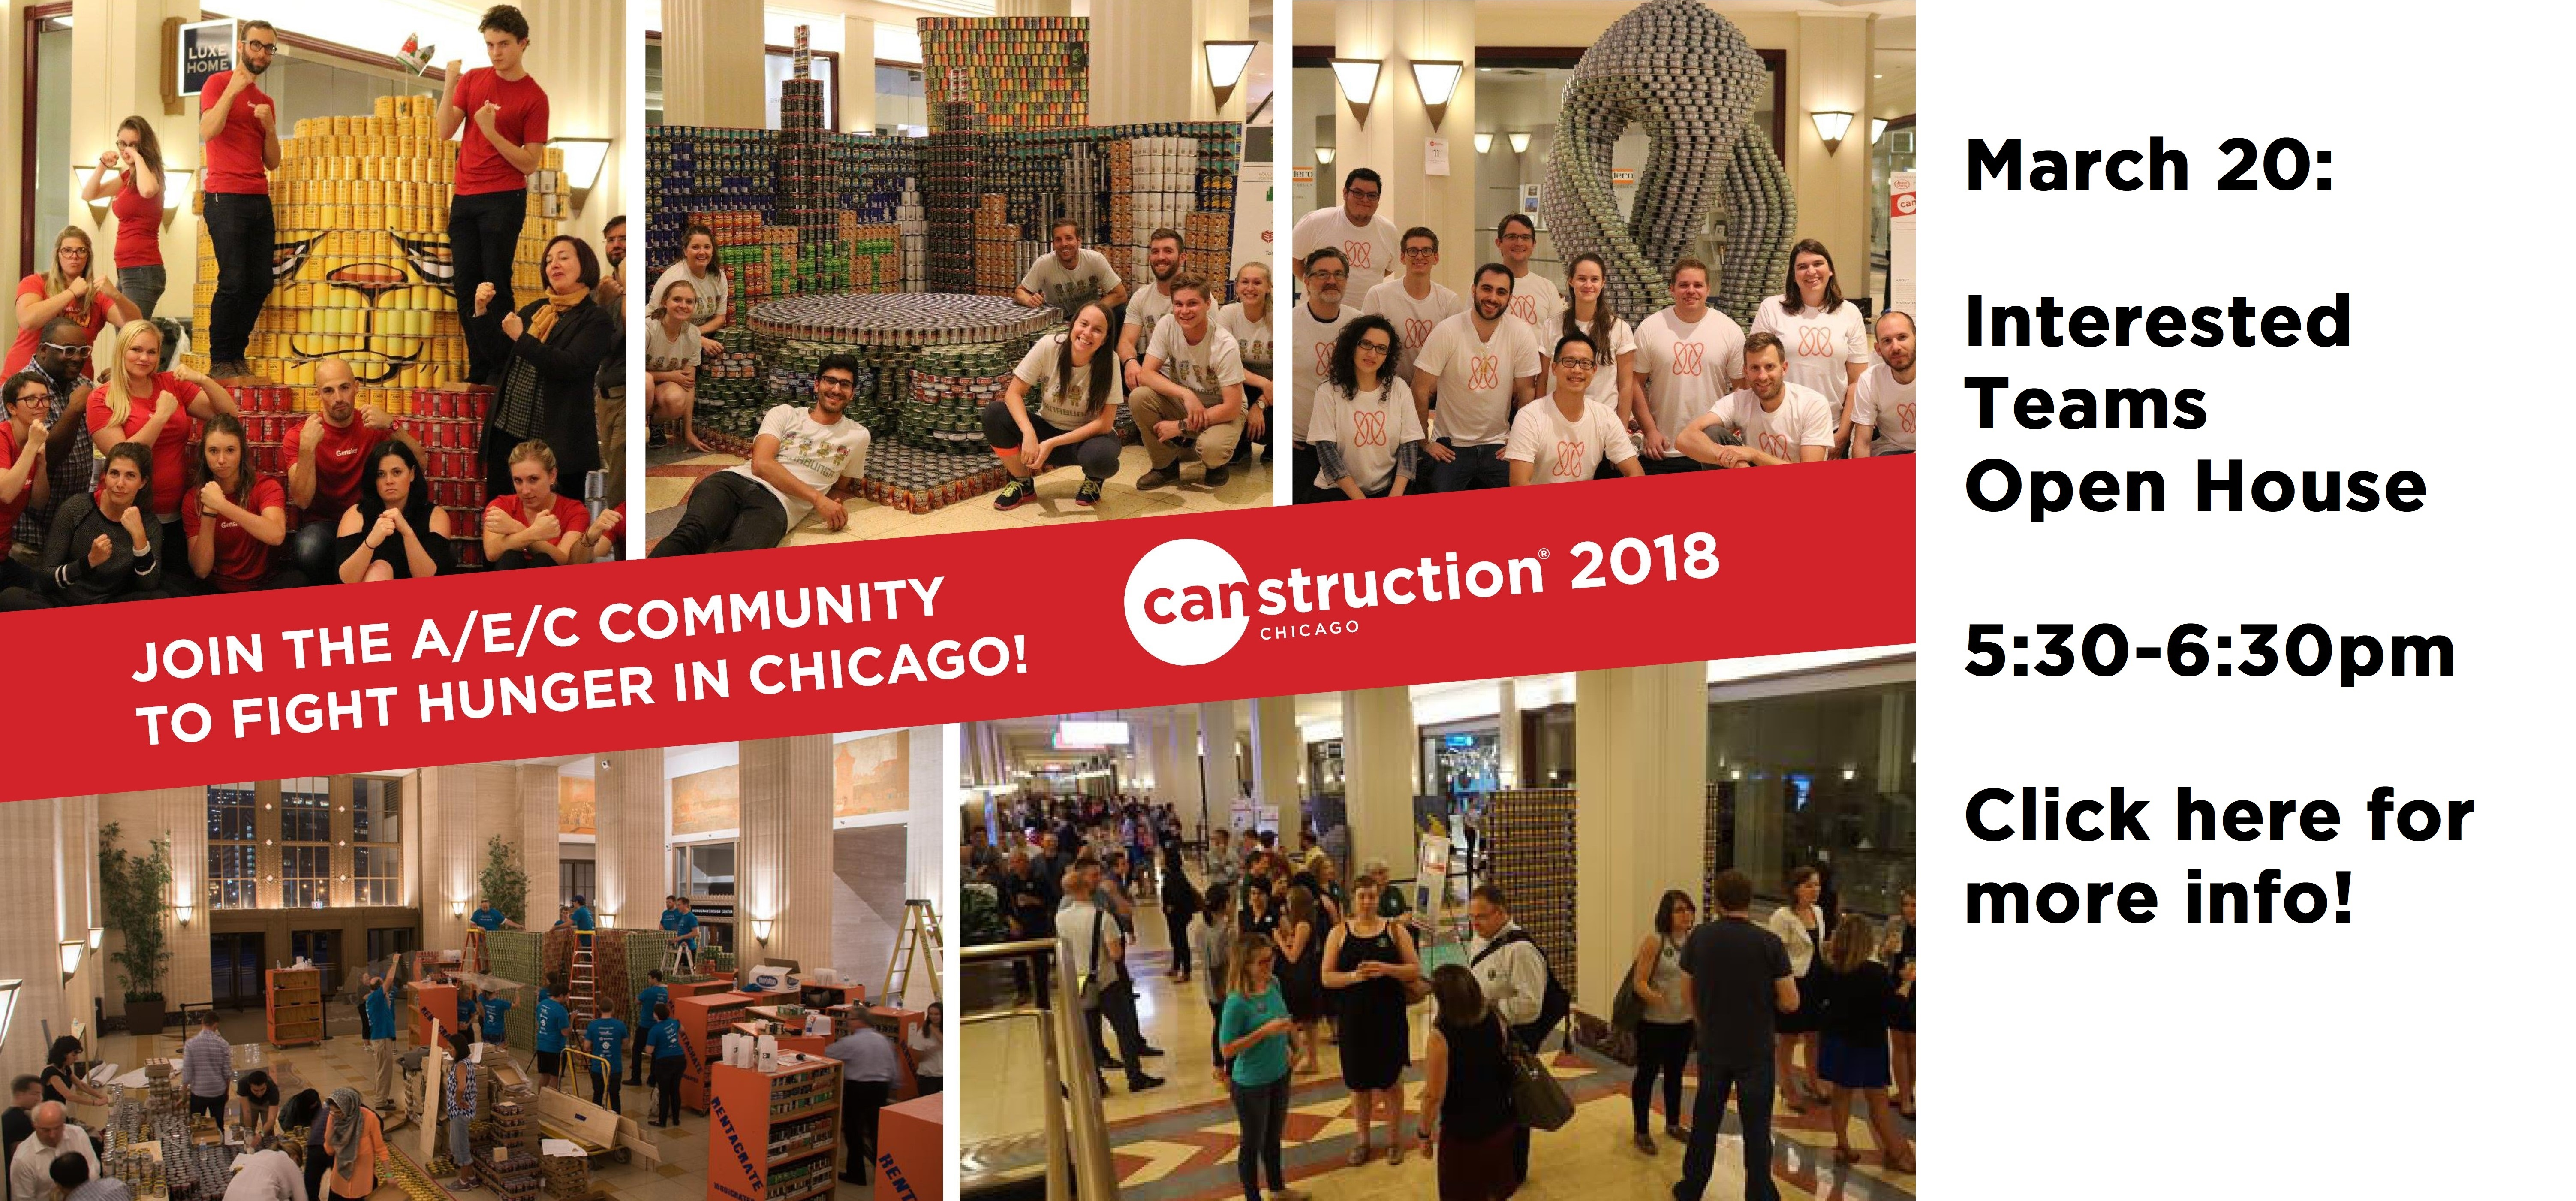 Canstruction 2018 Open House